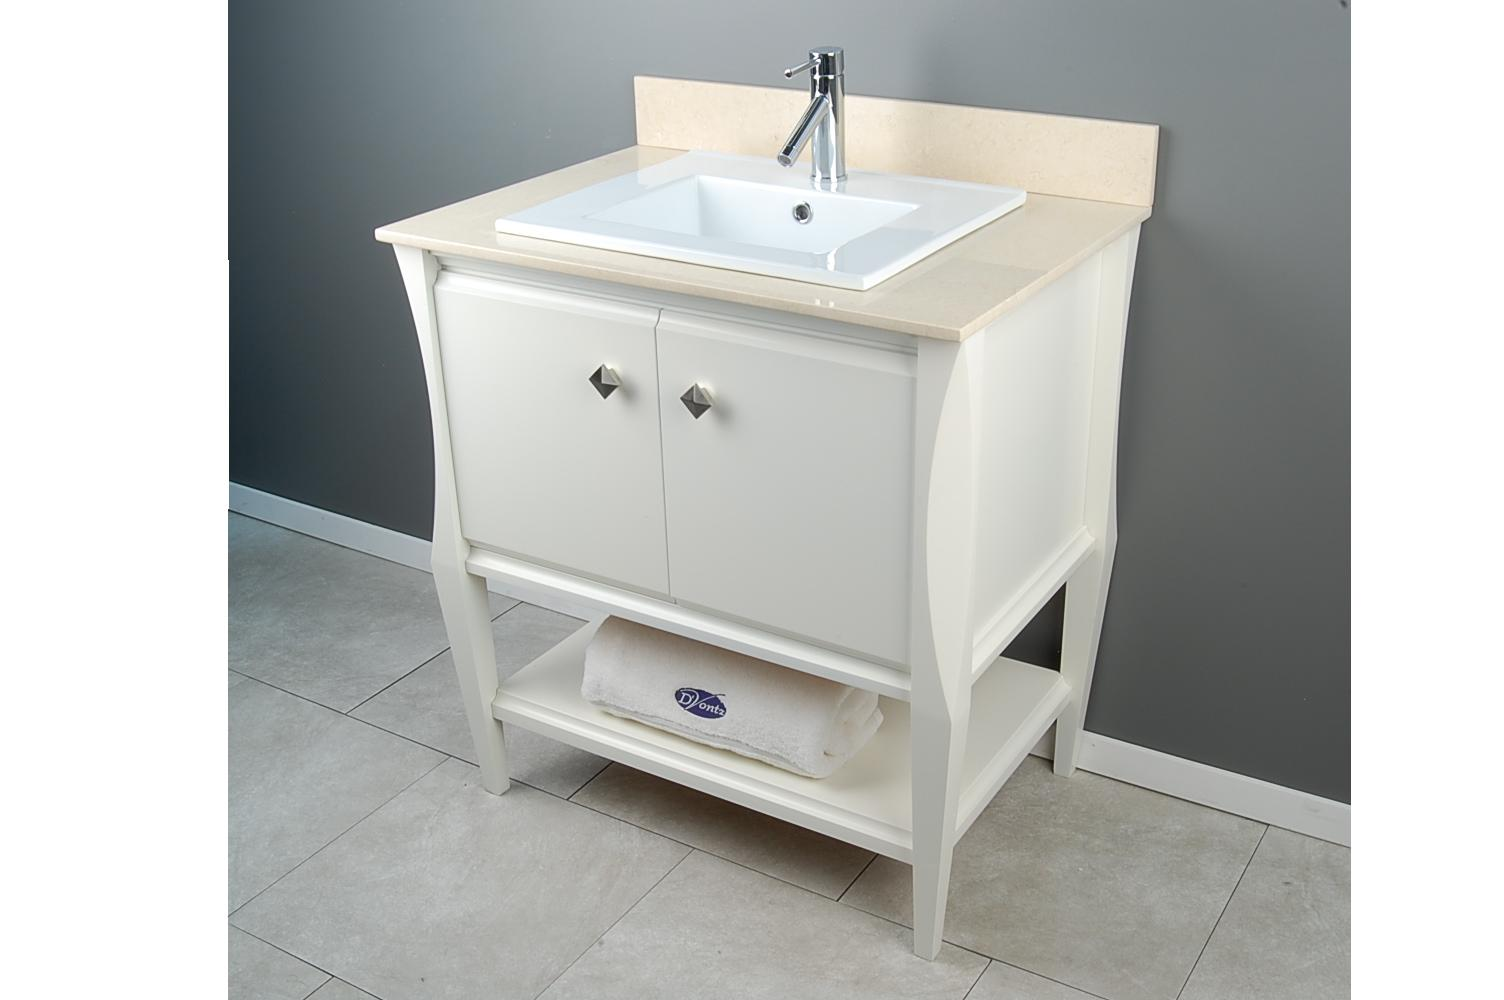 GA CONSOLE SH30 WH v2  D Vontz Finely Crafted Natural Stone and Copper Bath and Kitchen  . D Vontz Natural Marble Vessel Single Sink Bathroom Vanity Top. Home Design Ideas